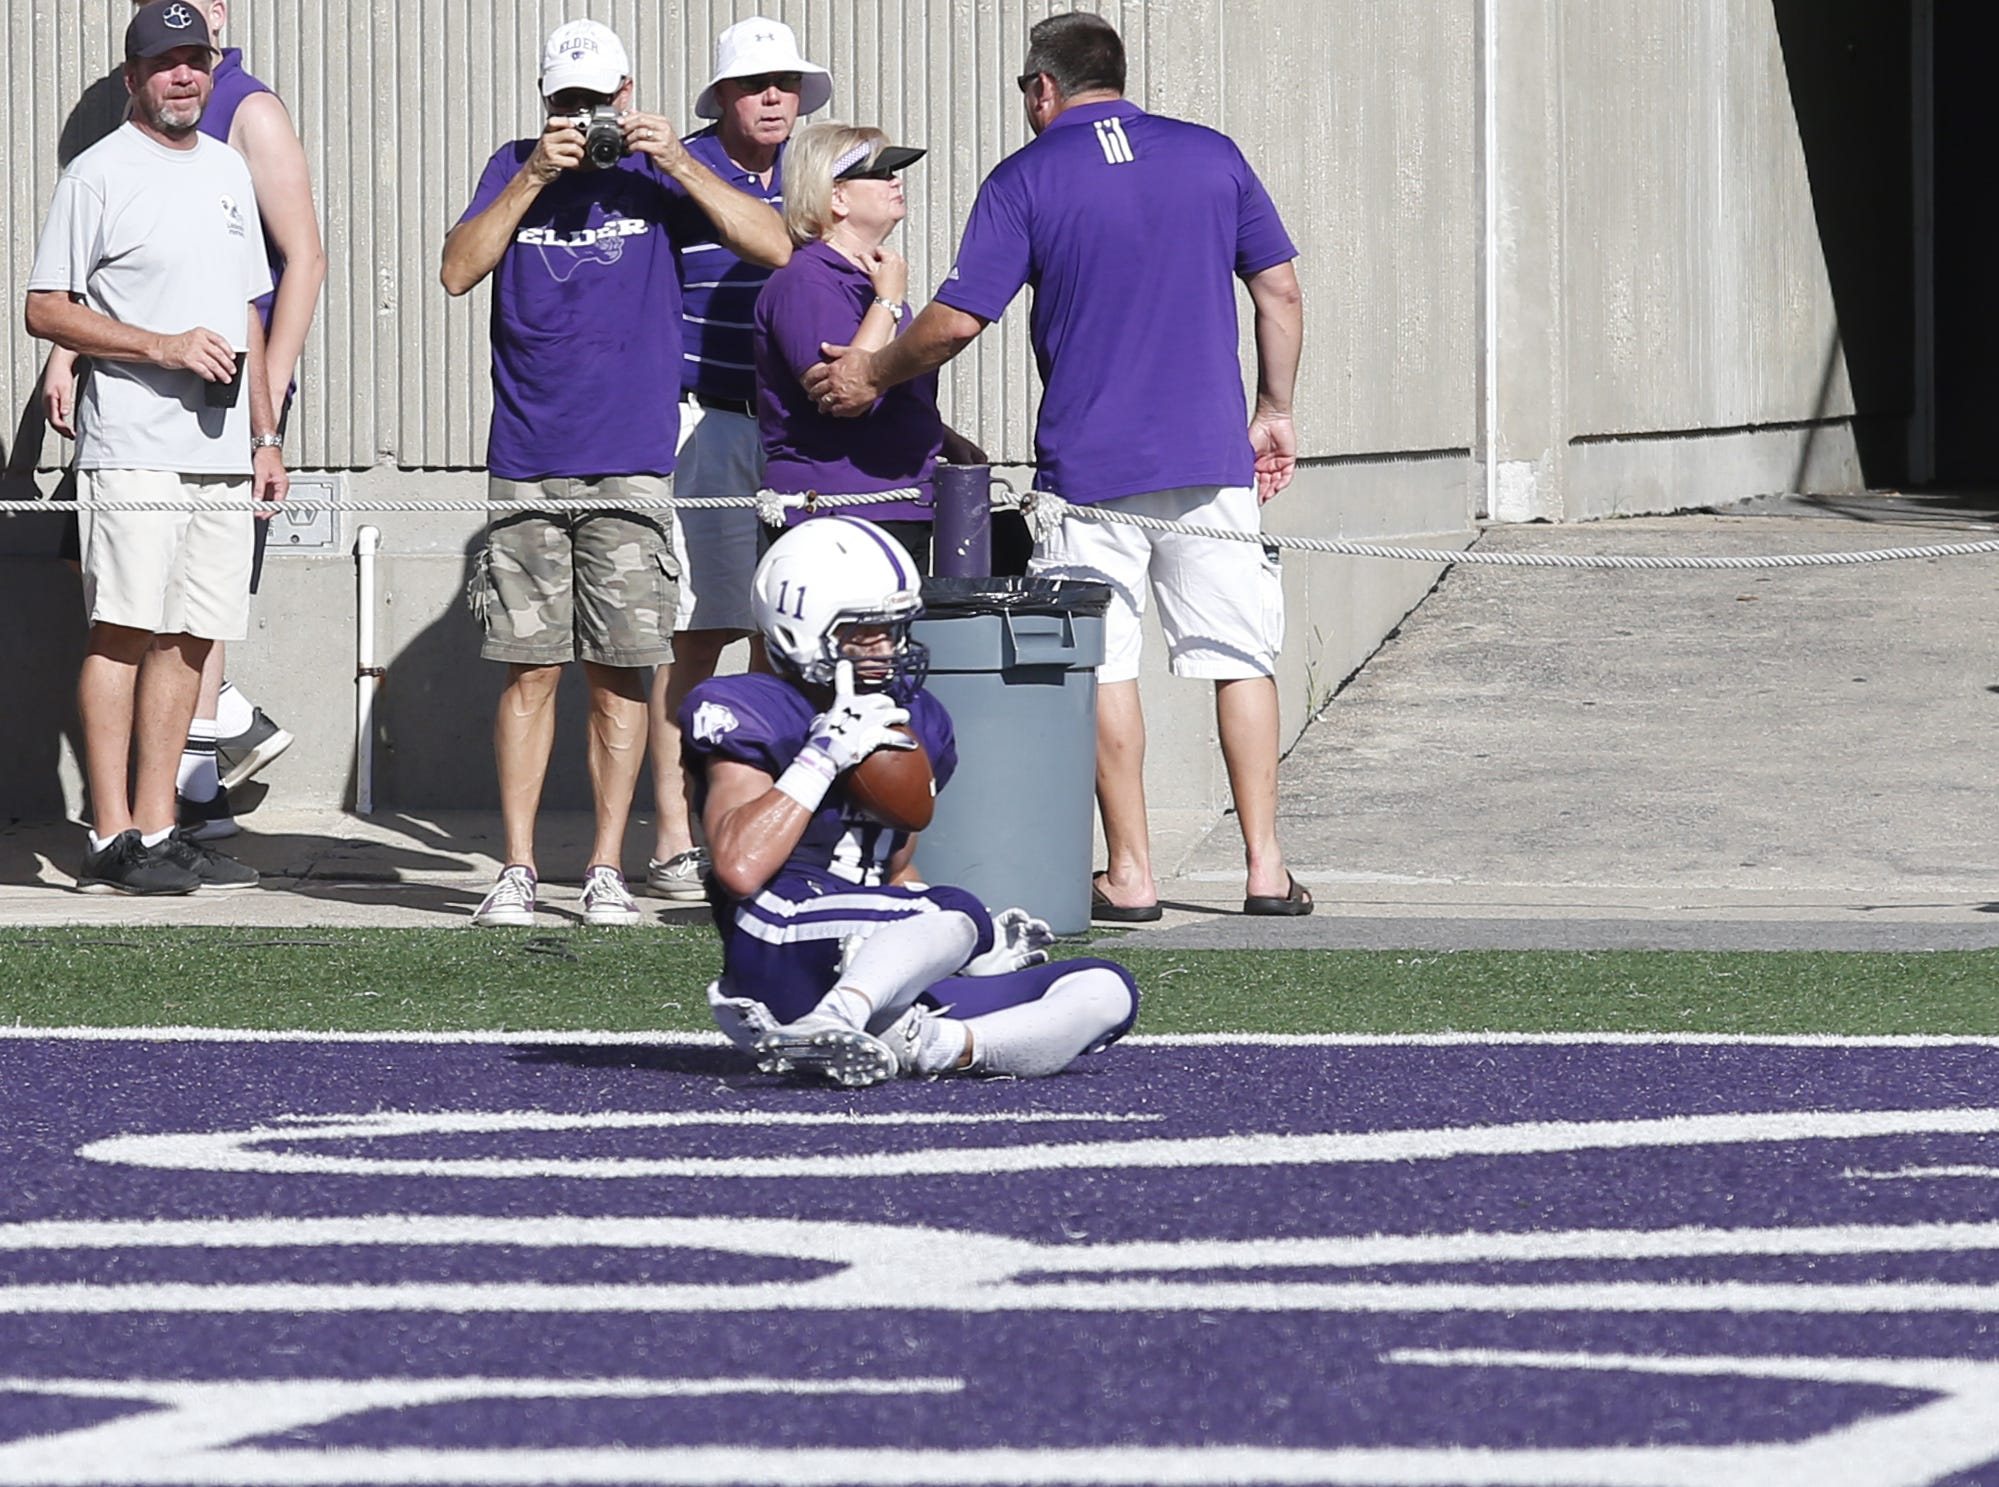 Elder tight end Joe Royer makes a reception in the end zone for a touchdown against St. Edward during their game at The Pit in Cincinnati Saturday, Sept. 15, 2018.